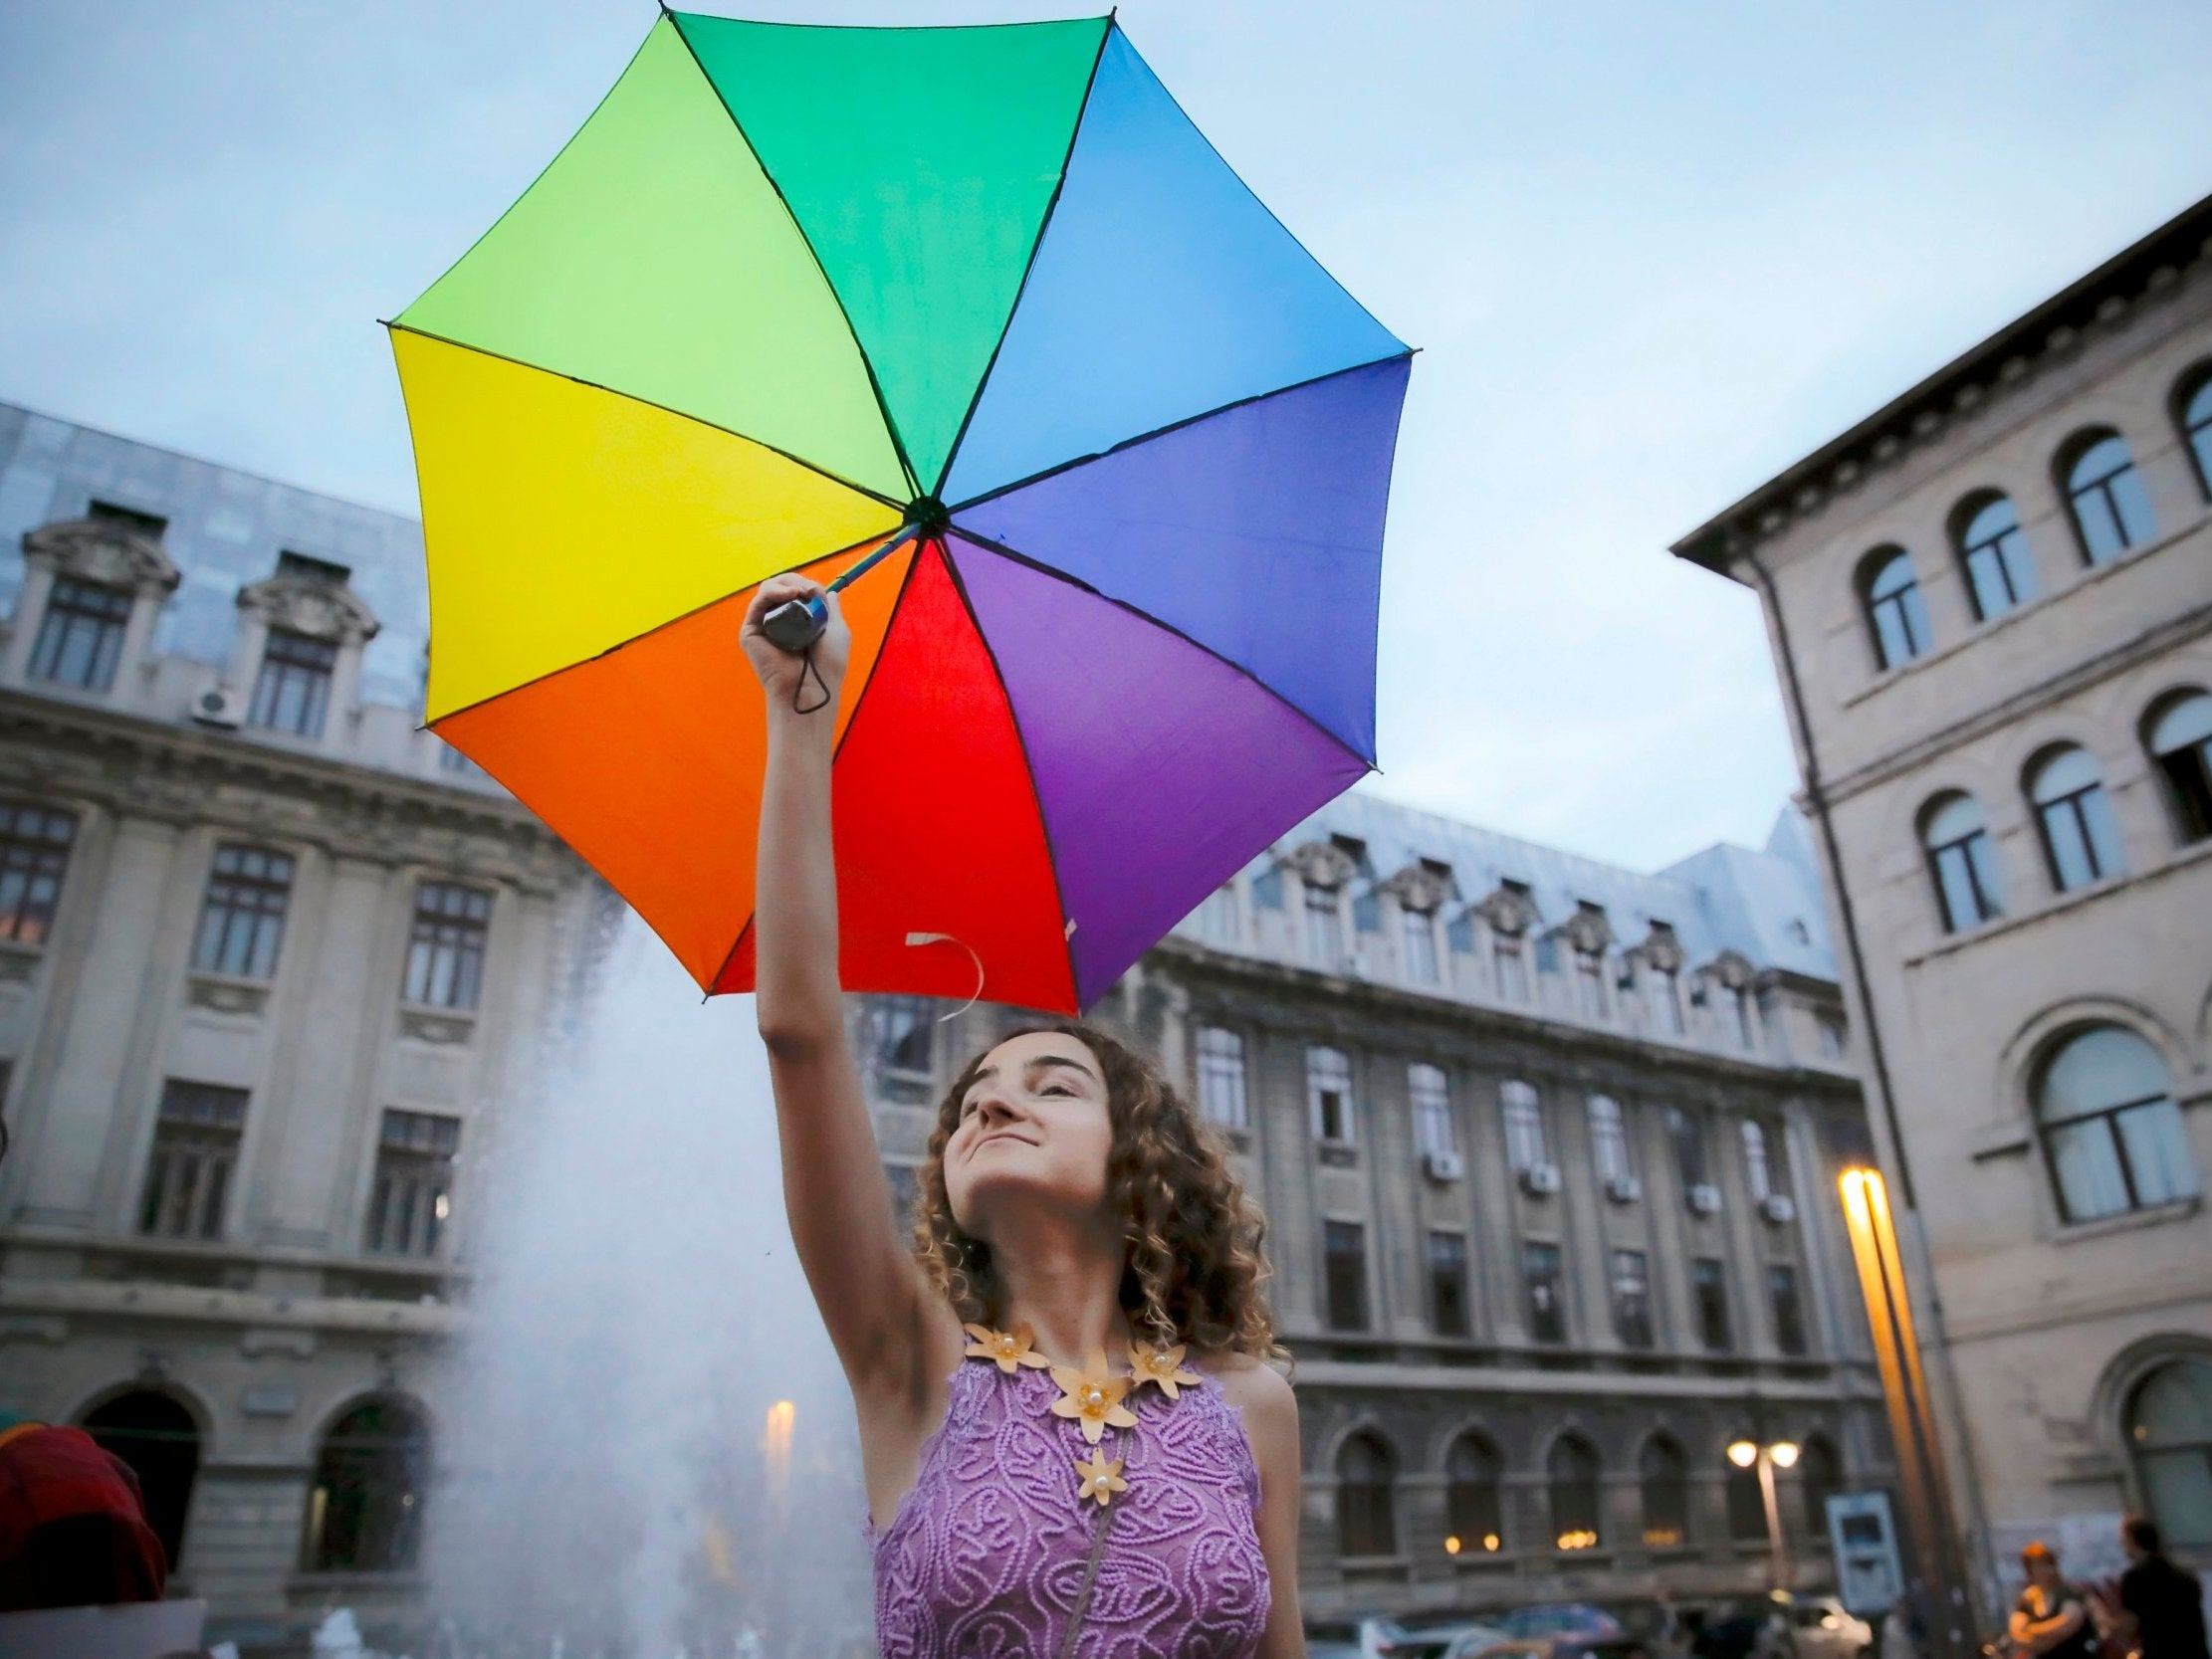 Romania to hold vote on whether to permanently ban gay marriage